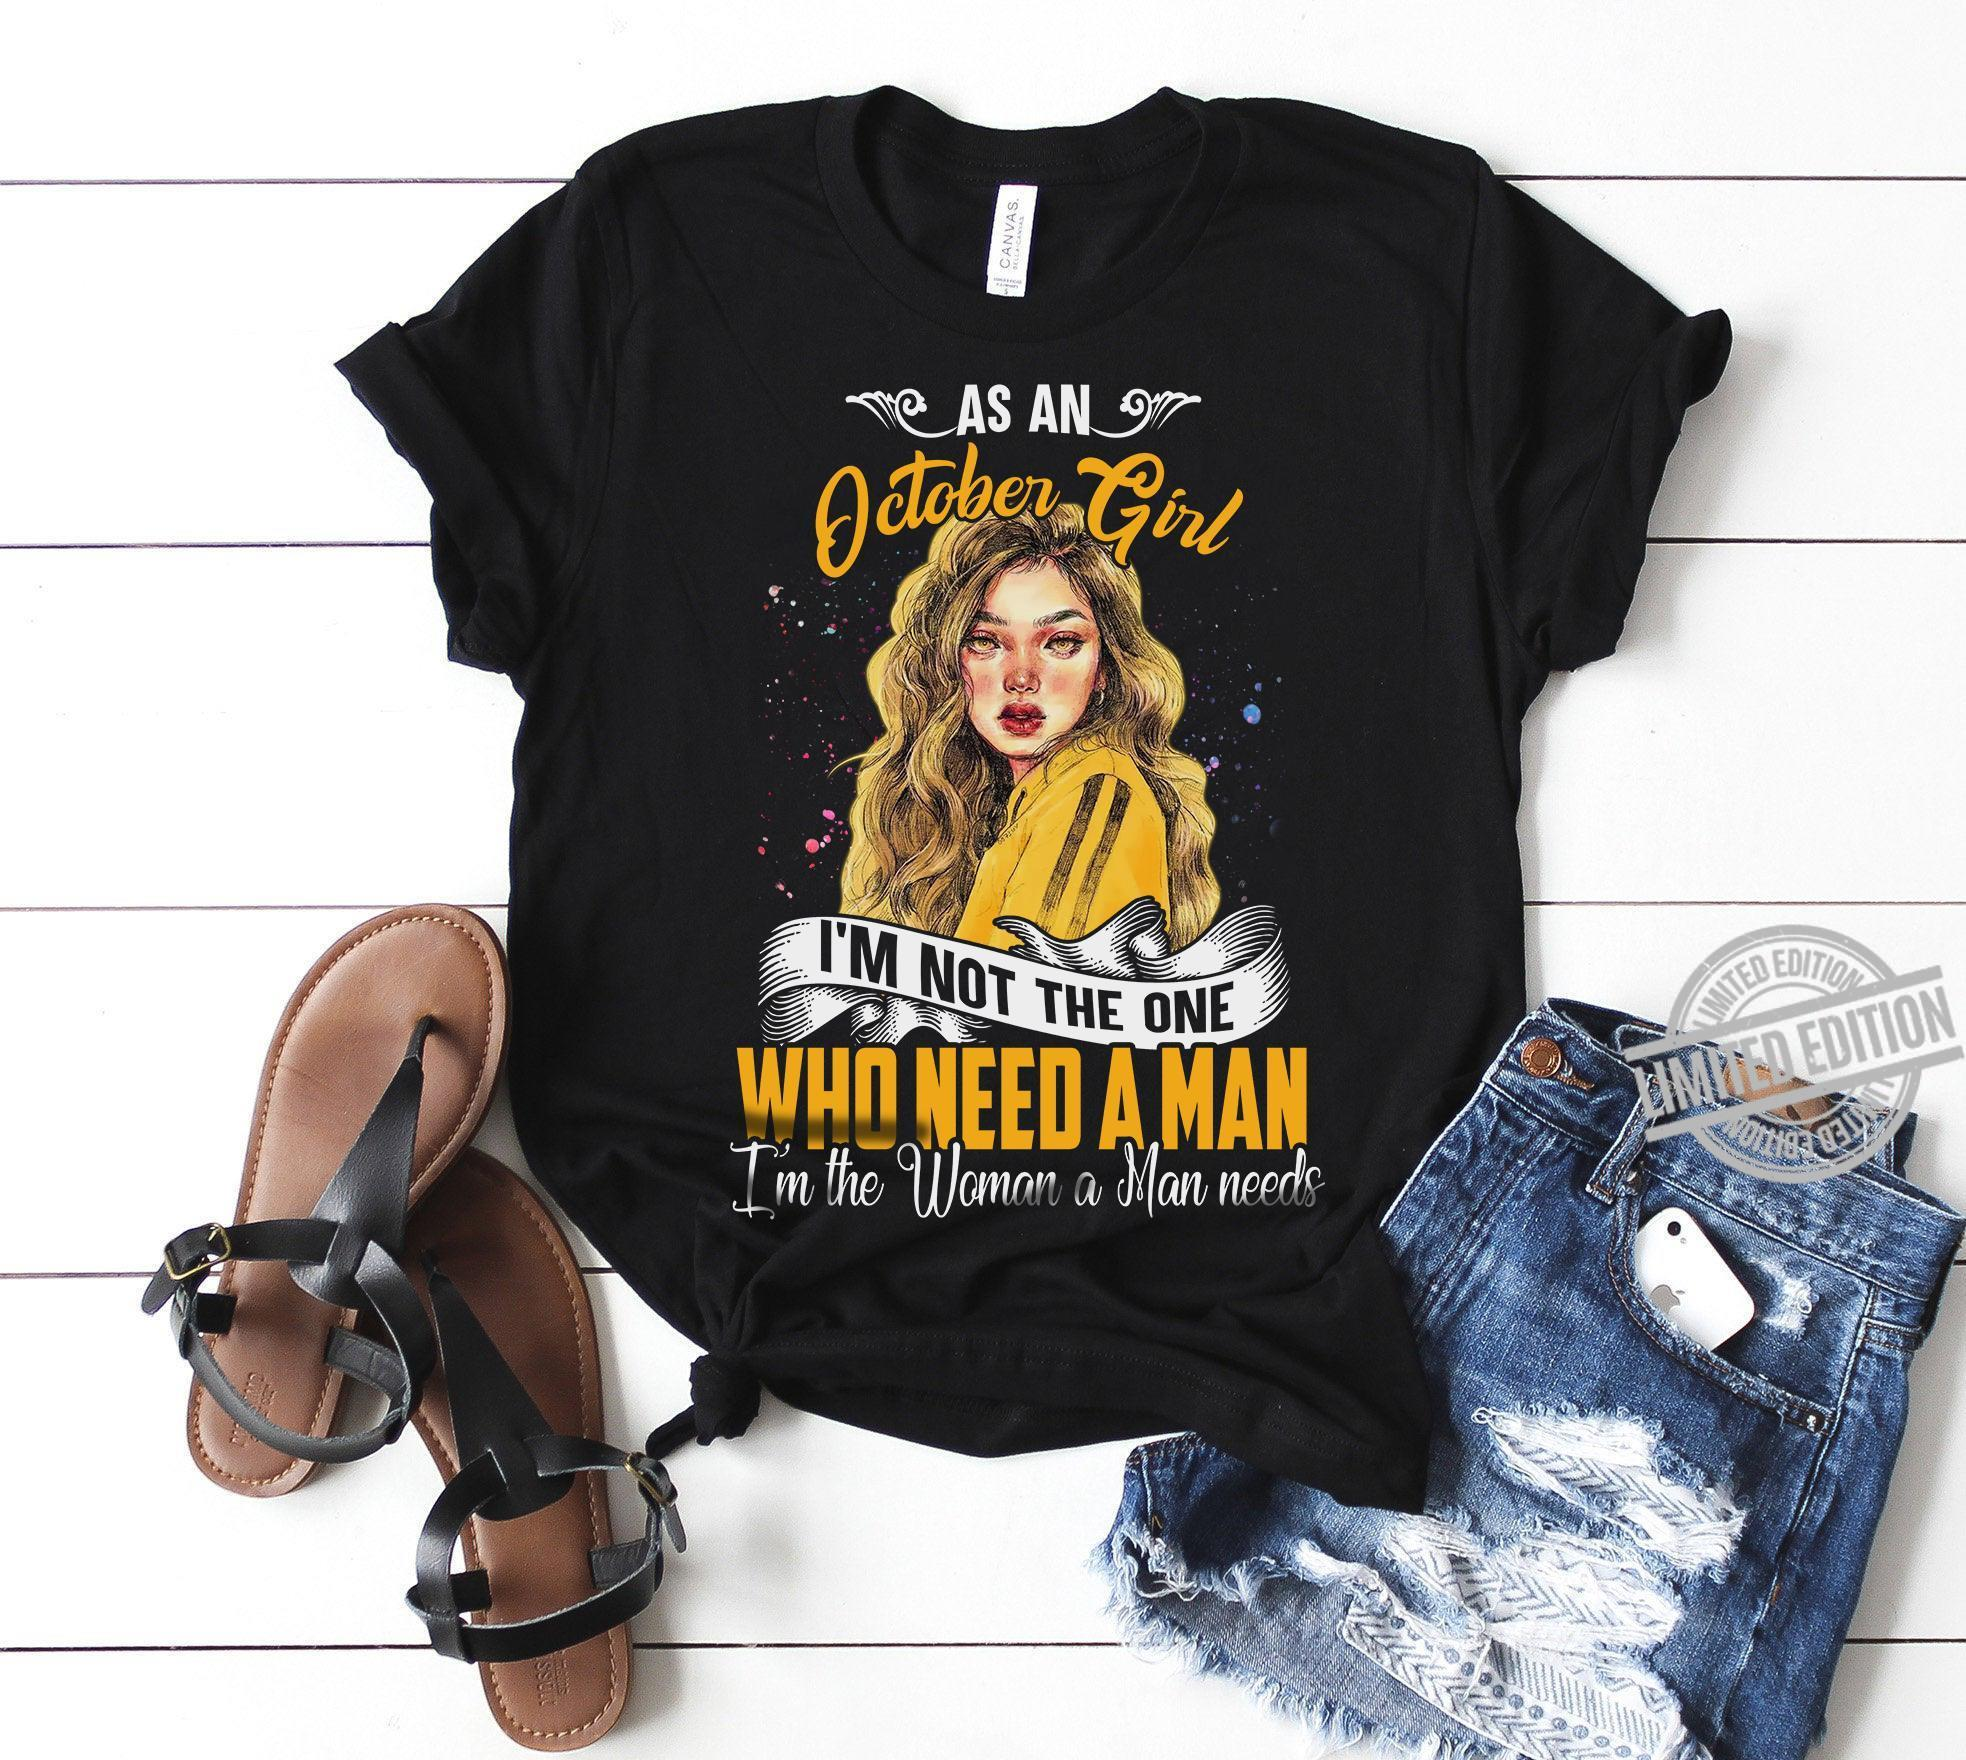 As A October Girl I'm Not The One Who Need A Man I'm The Woman A Man Needs Shirt